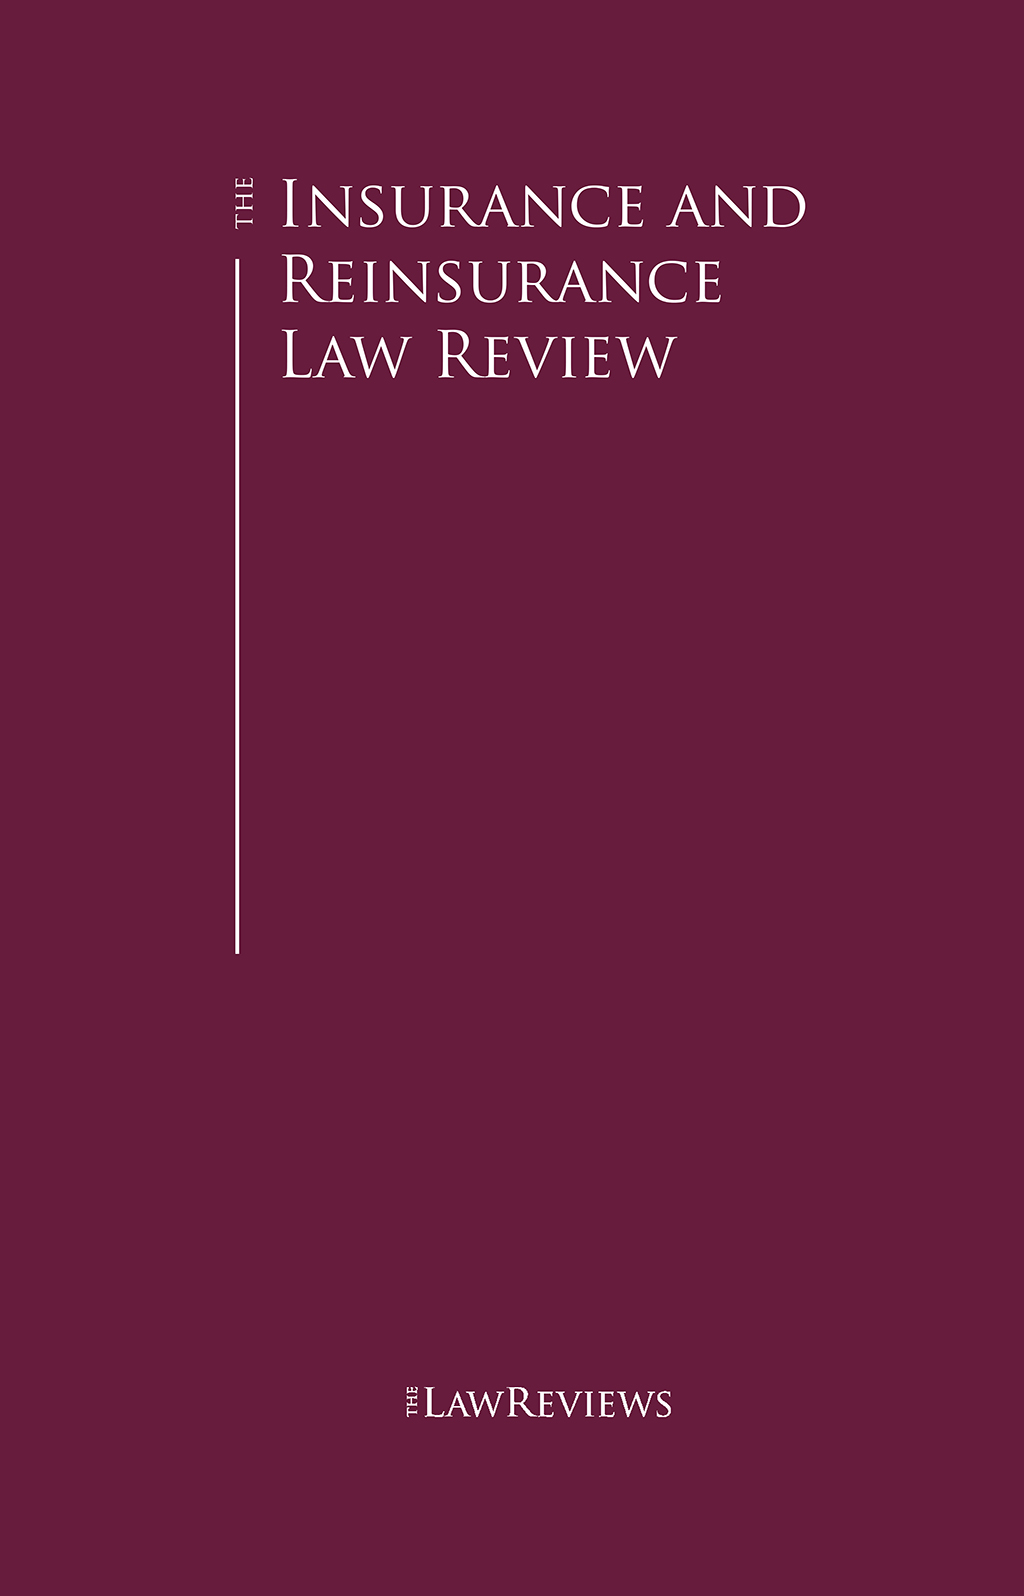 The Insurance and Reinsurance Law Review